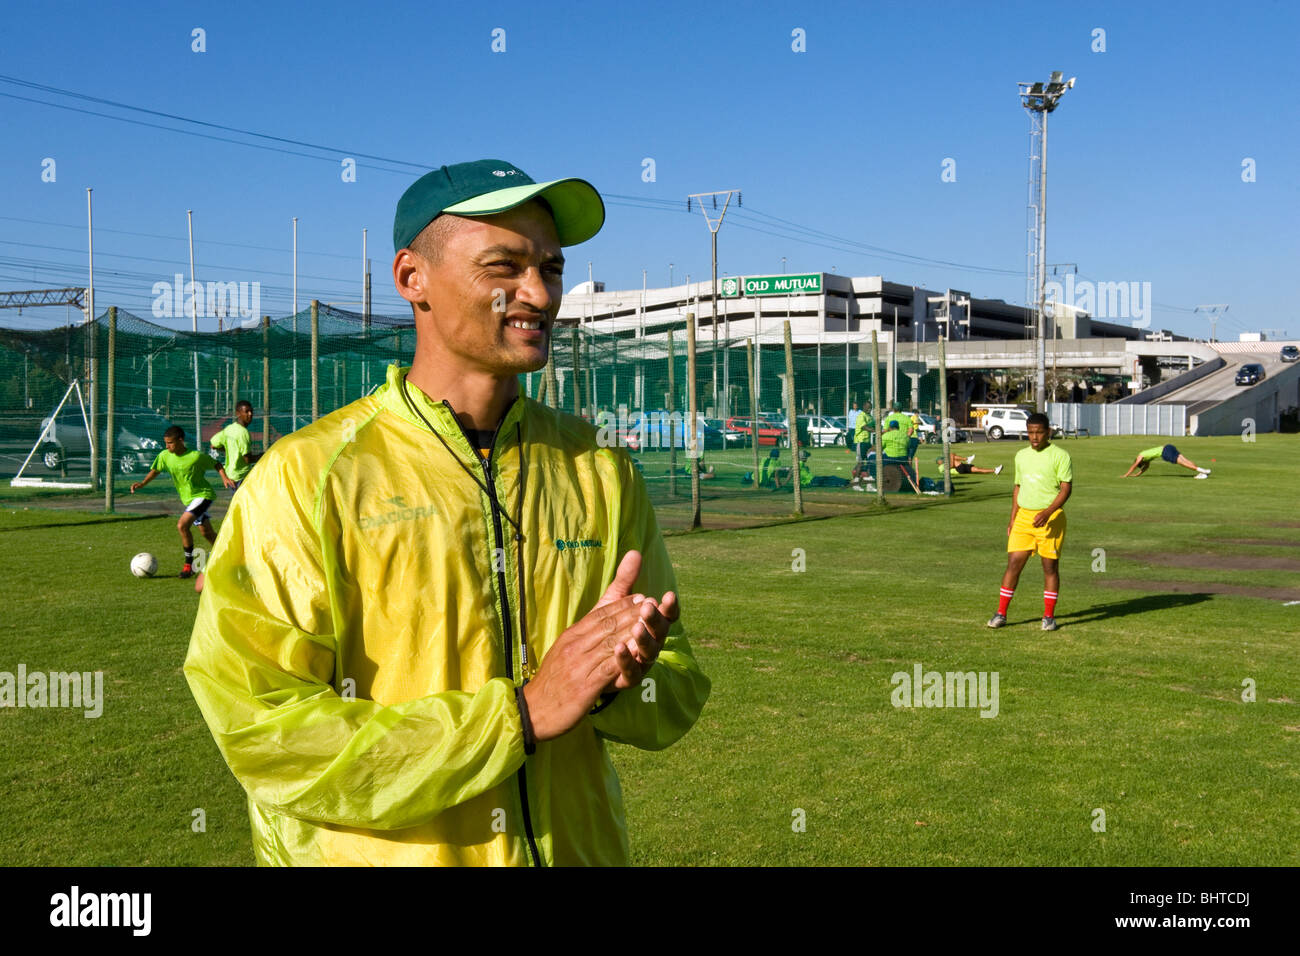 Coach giving instructions at Old Mutual Football Academy, Cape Town, South Africa - Stock Image